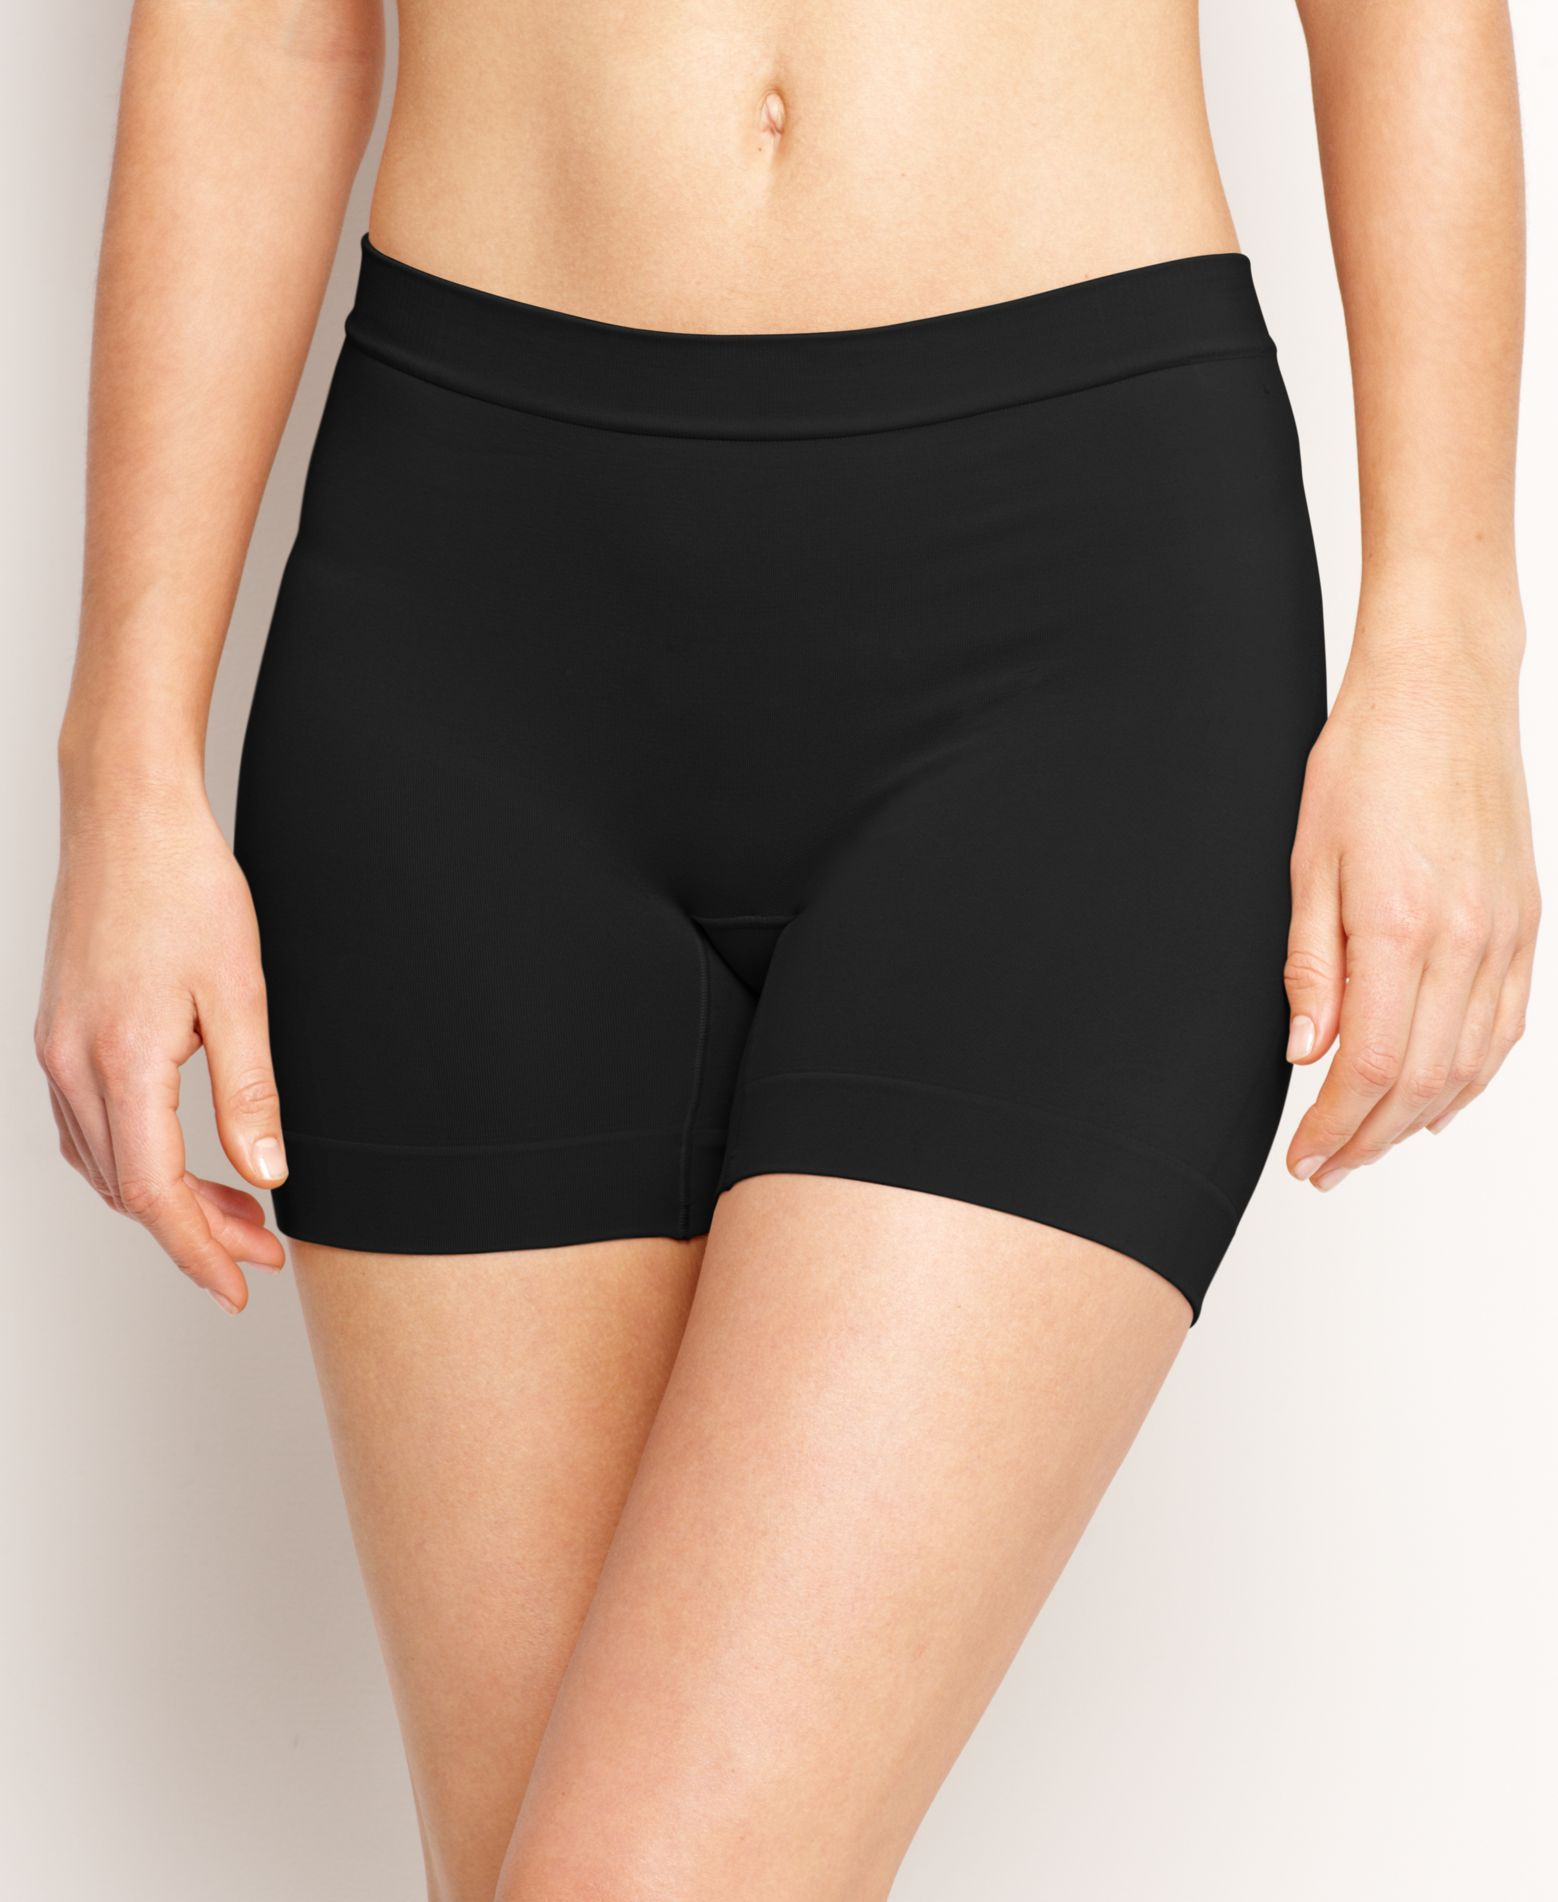 ab2585865 Jockey Skimmies Slip Shorts - if you don t like the feeling of your legs  rubbing together